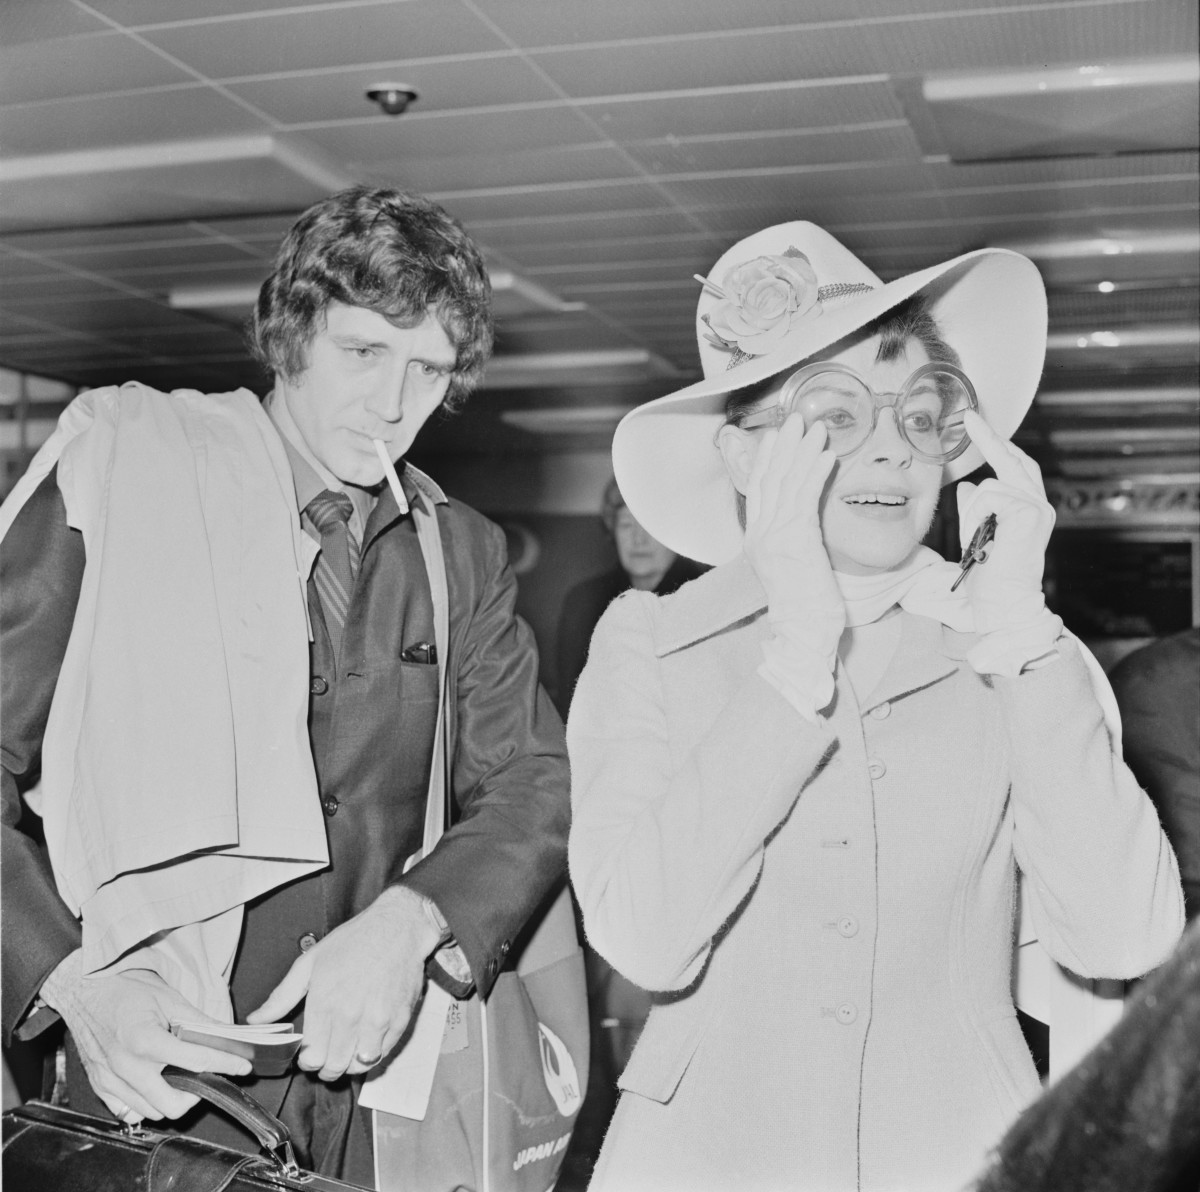 Judy Garland and Mickey Deans at Heathrow airport in 1969